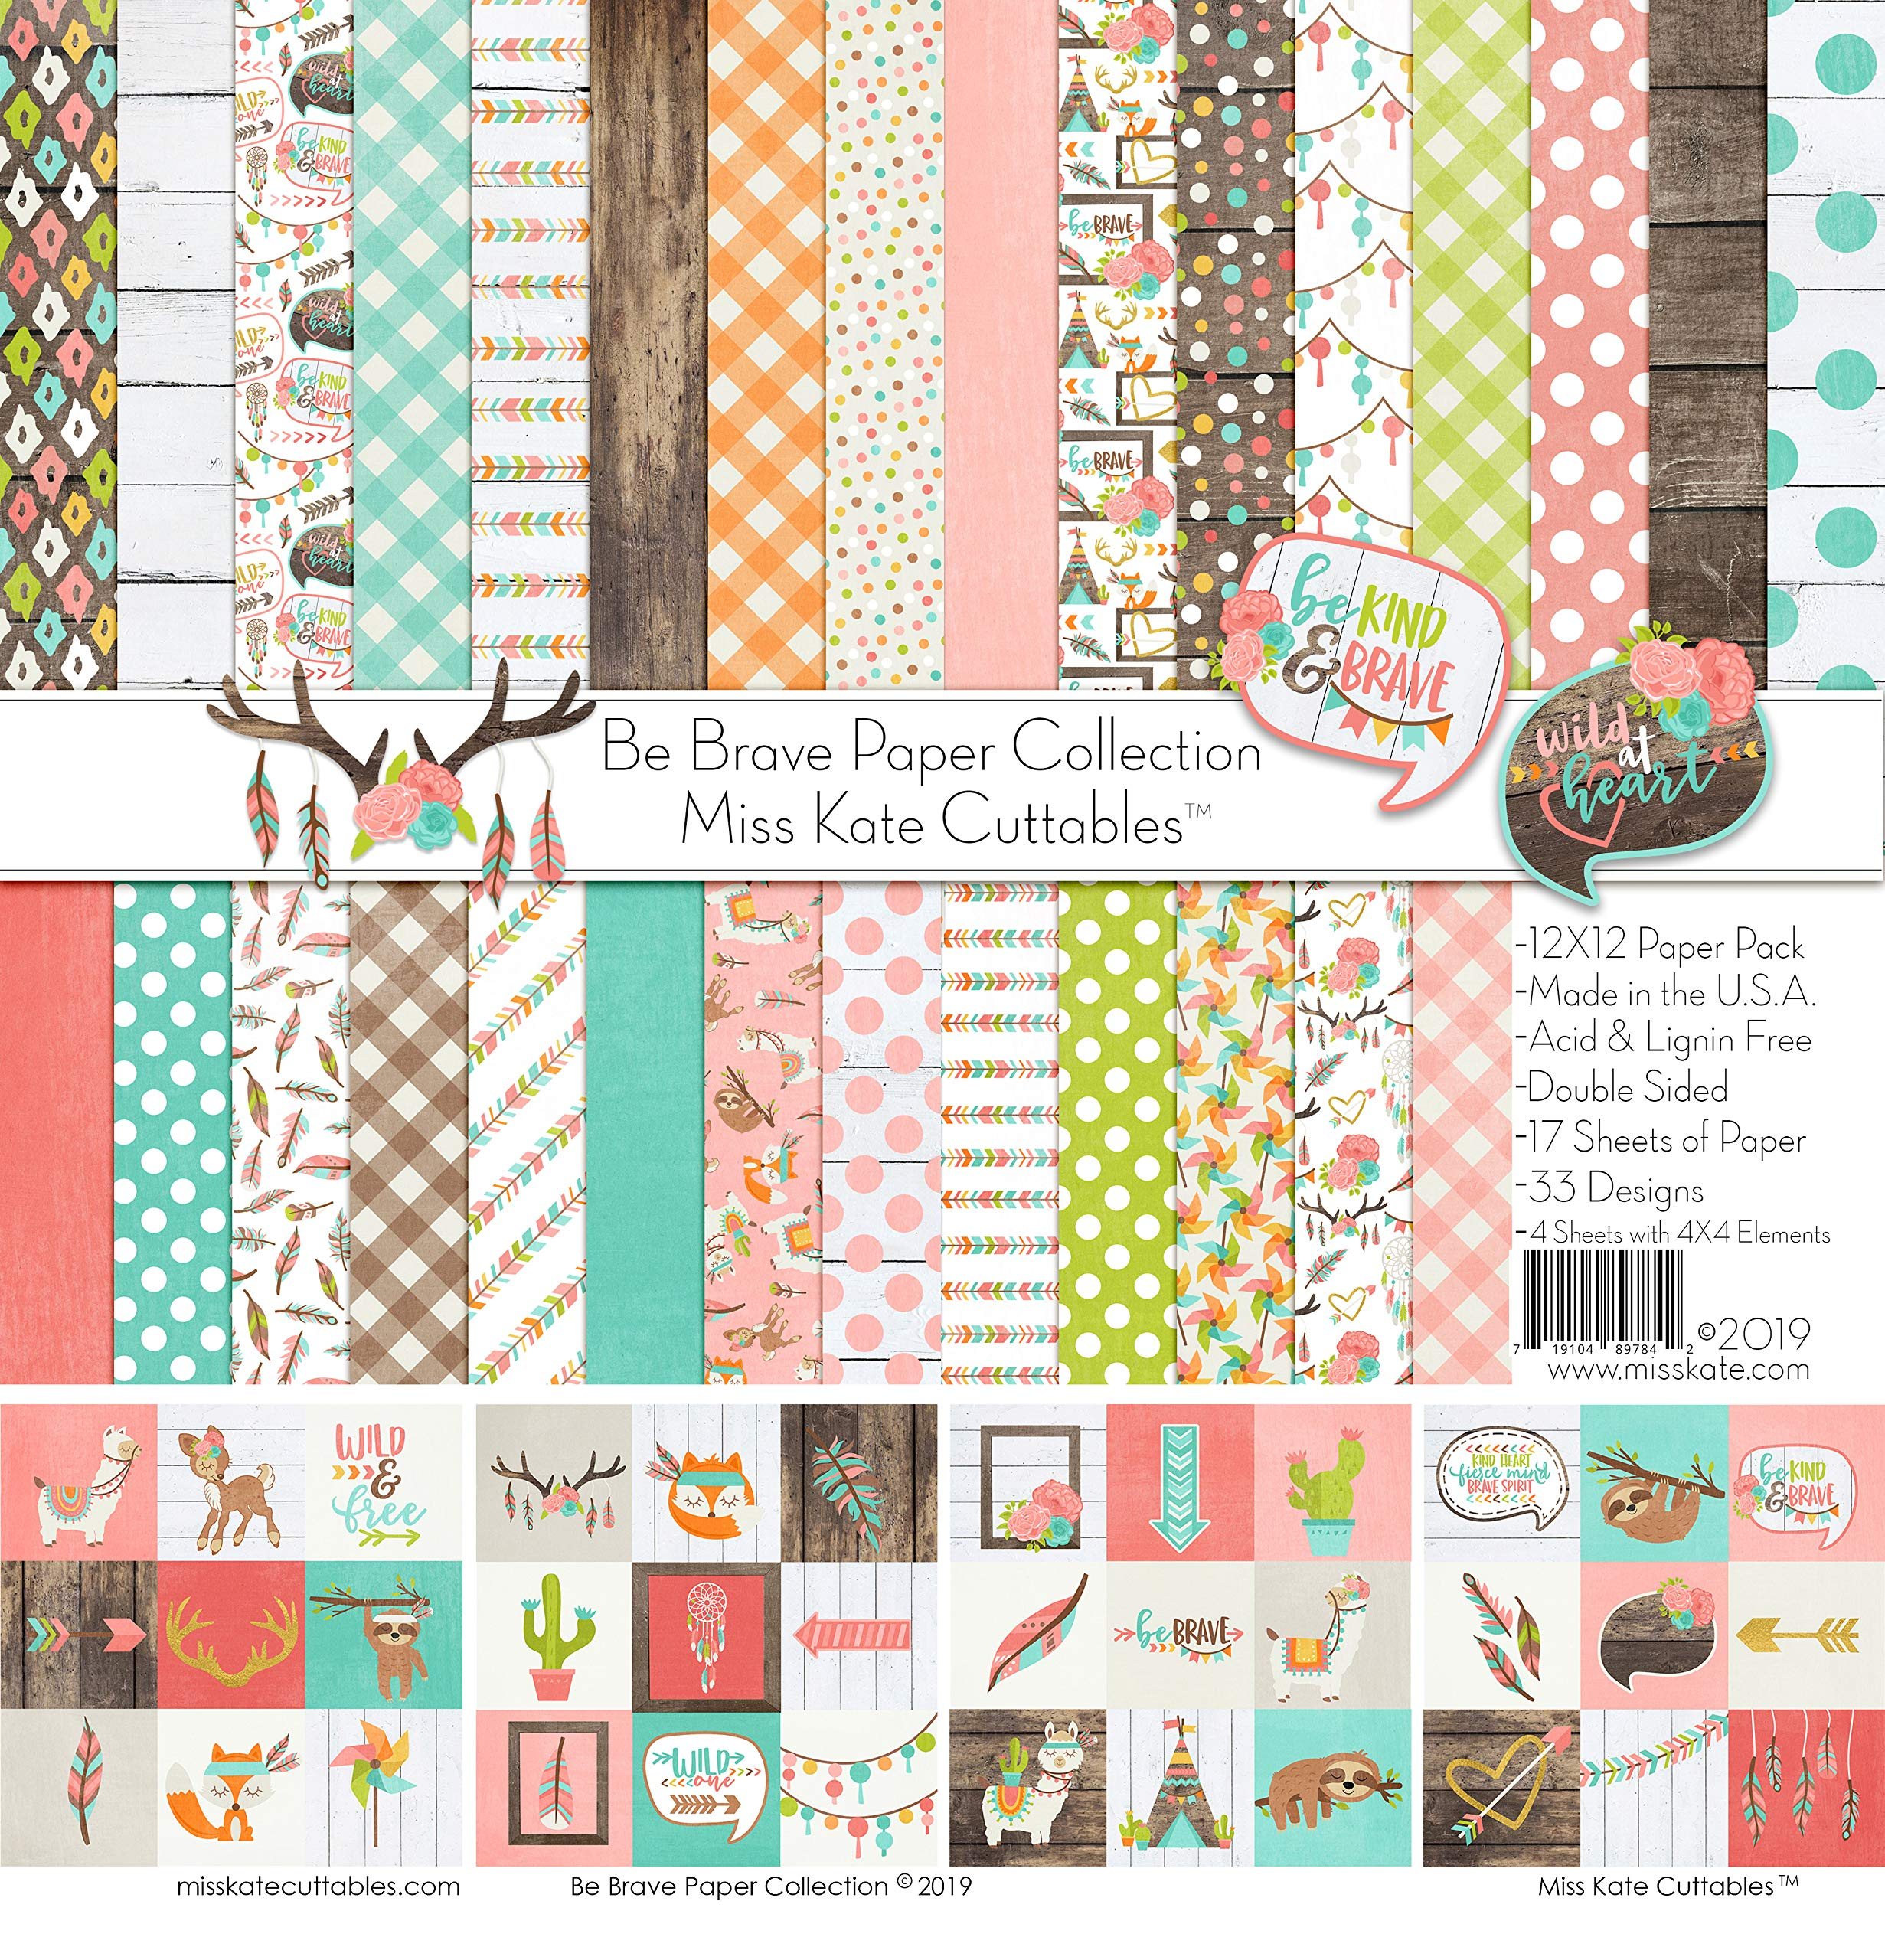 Pattern Paper Pack - Be Brave - 17 Double-Sided 12''x12'' Collection Includes 34 Patterns - Scrapbooking Card Making Crafting - by Miss Kate Cuttables